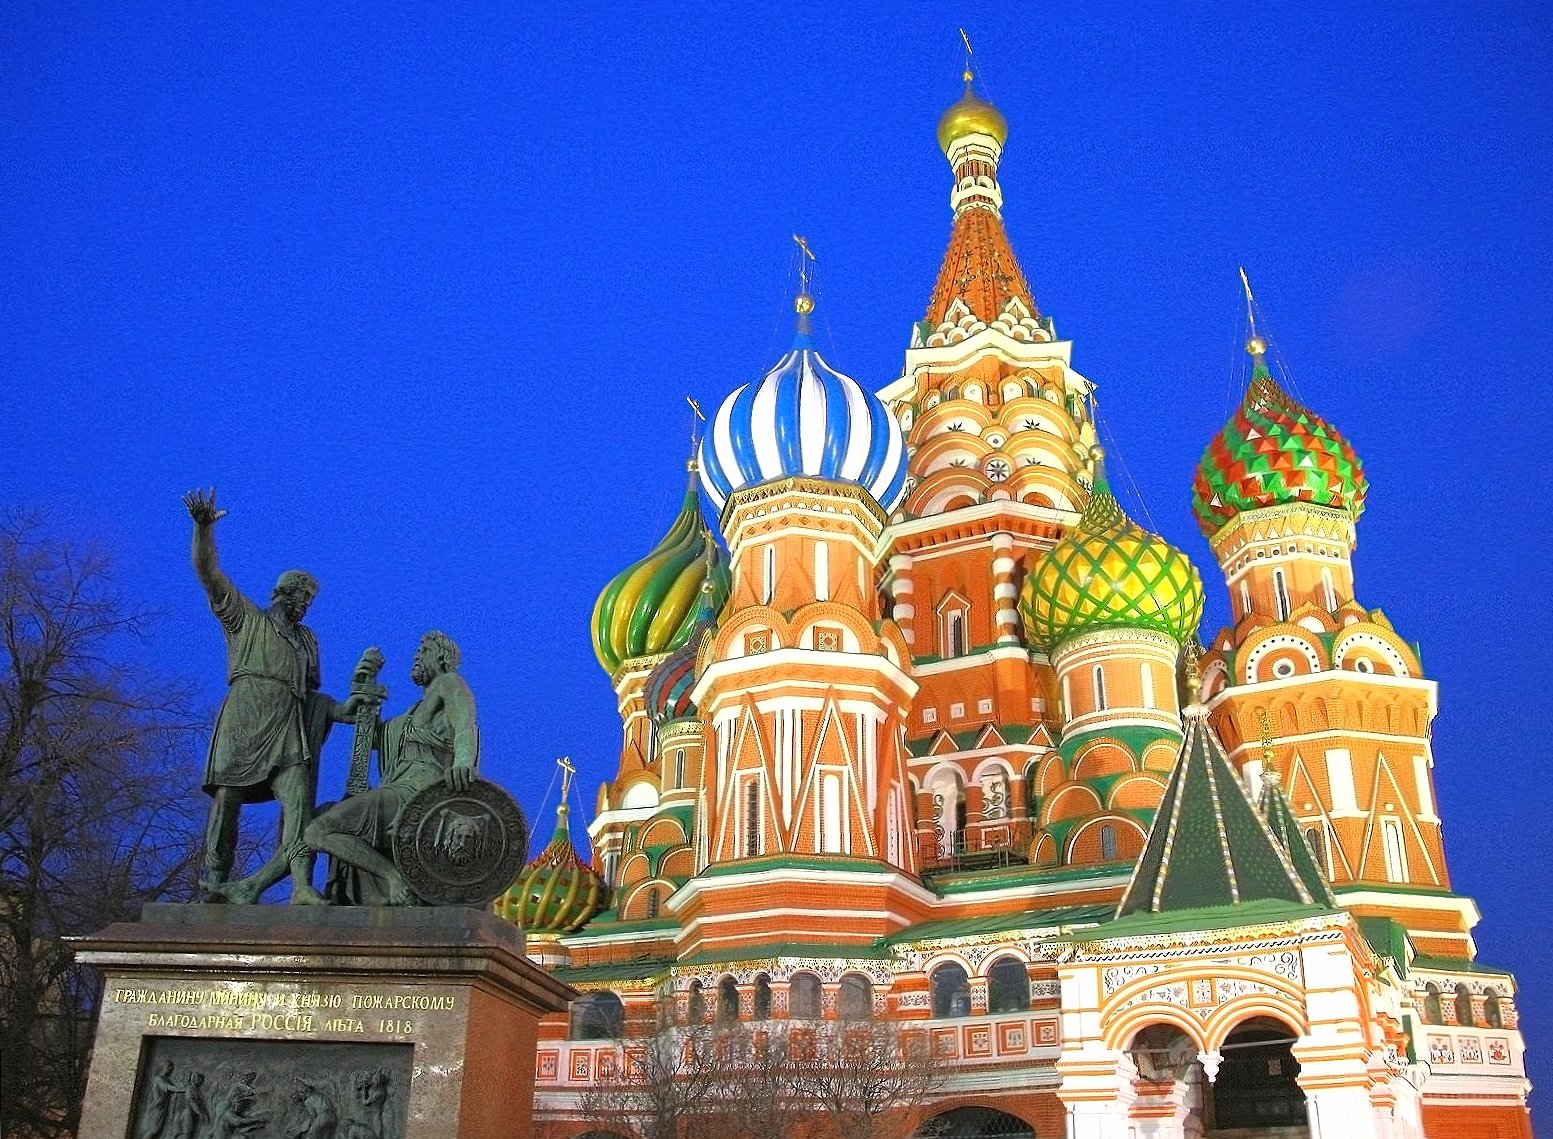 Moscow saint basils cathedral at 640 x 1136 iPhone 5 size wallpapers HD quality